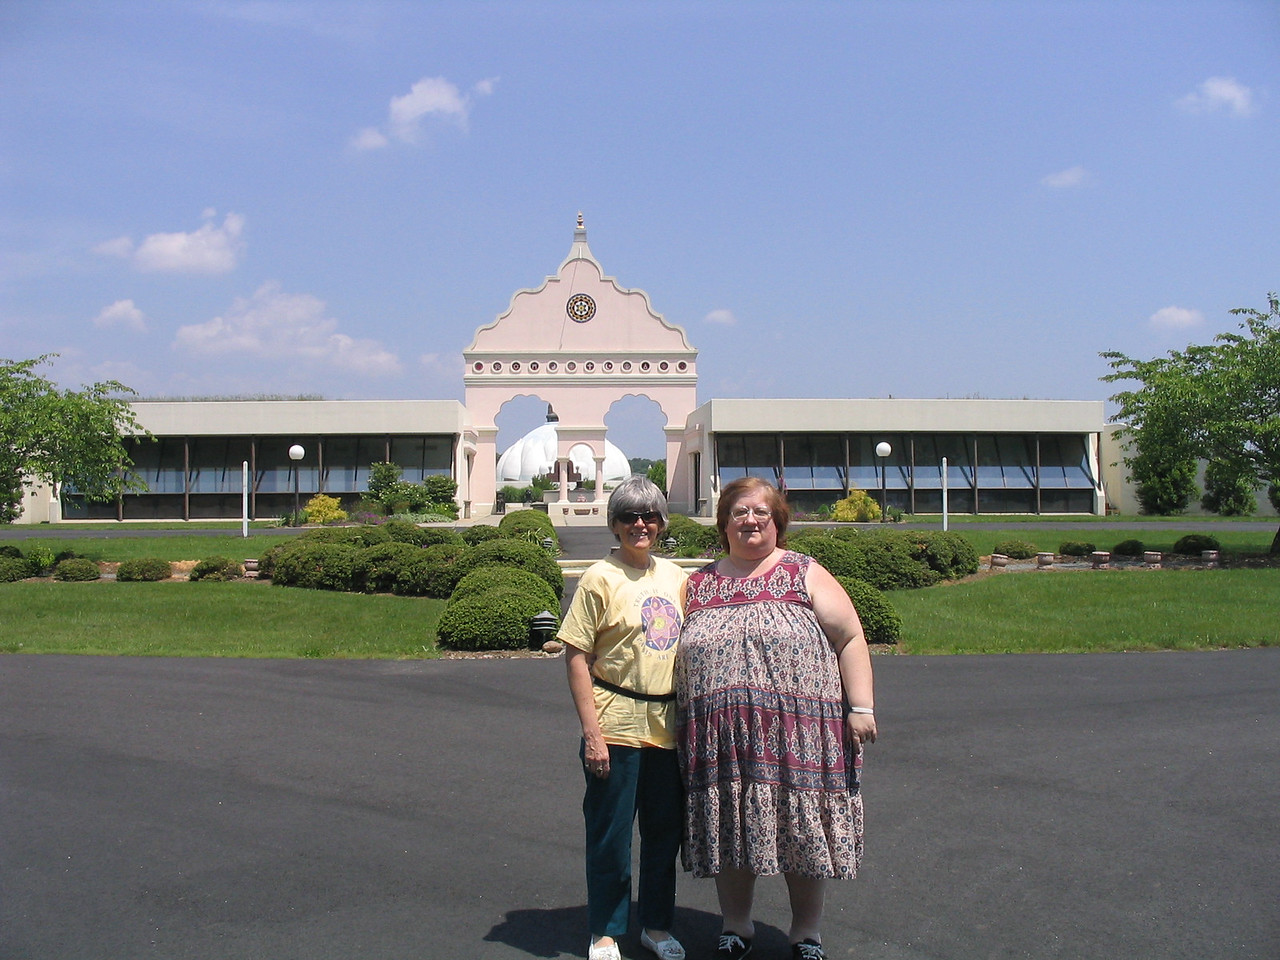 Bonnie and Debbie in front of the LOTUS....May 2006.